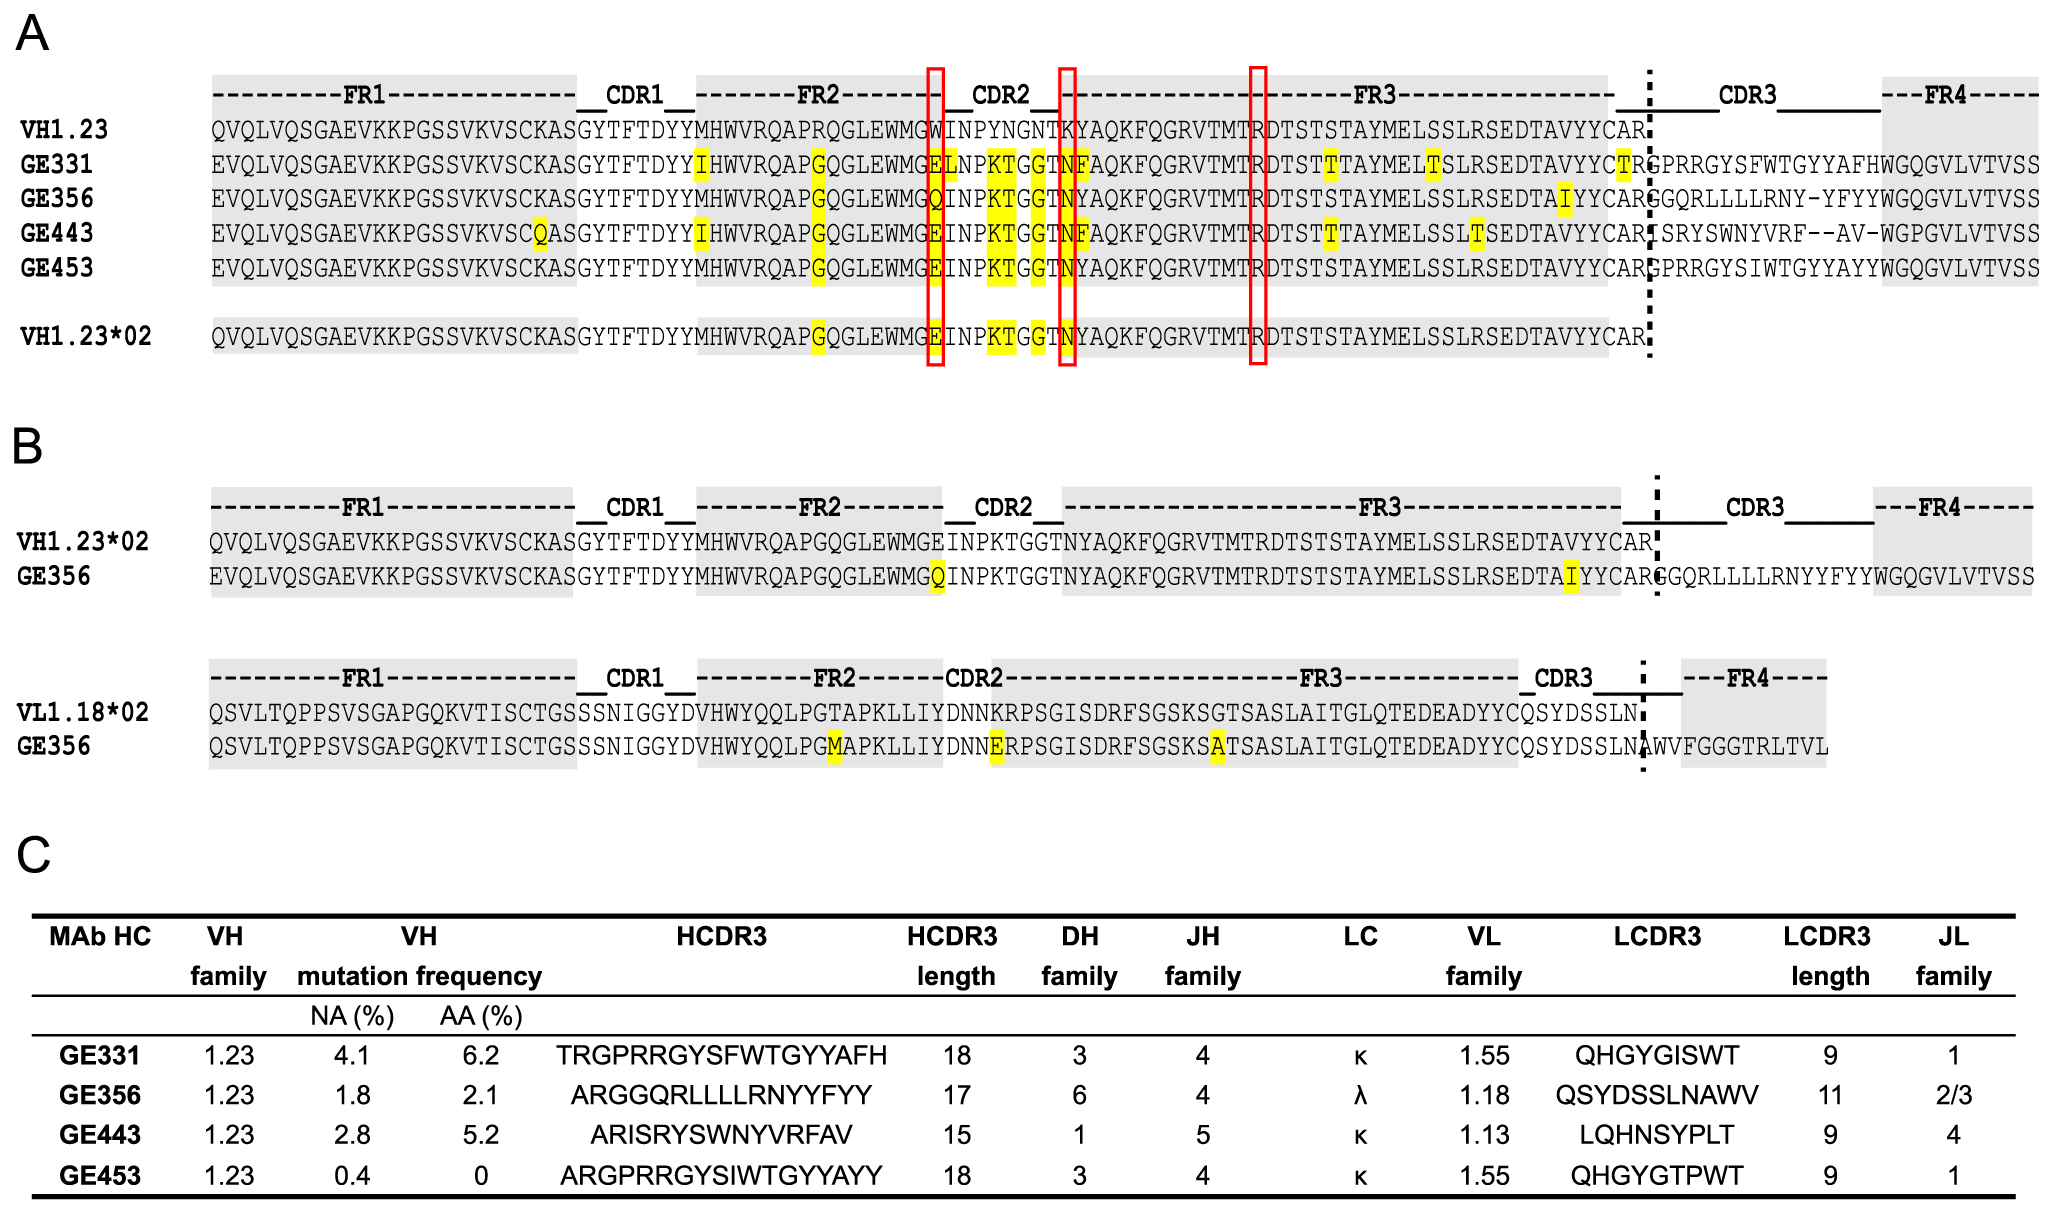 Genetic analysis of the isolated VH1.23-using CD4bs-specific MAbs.